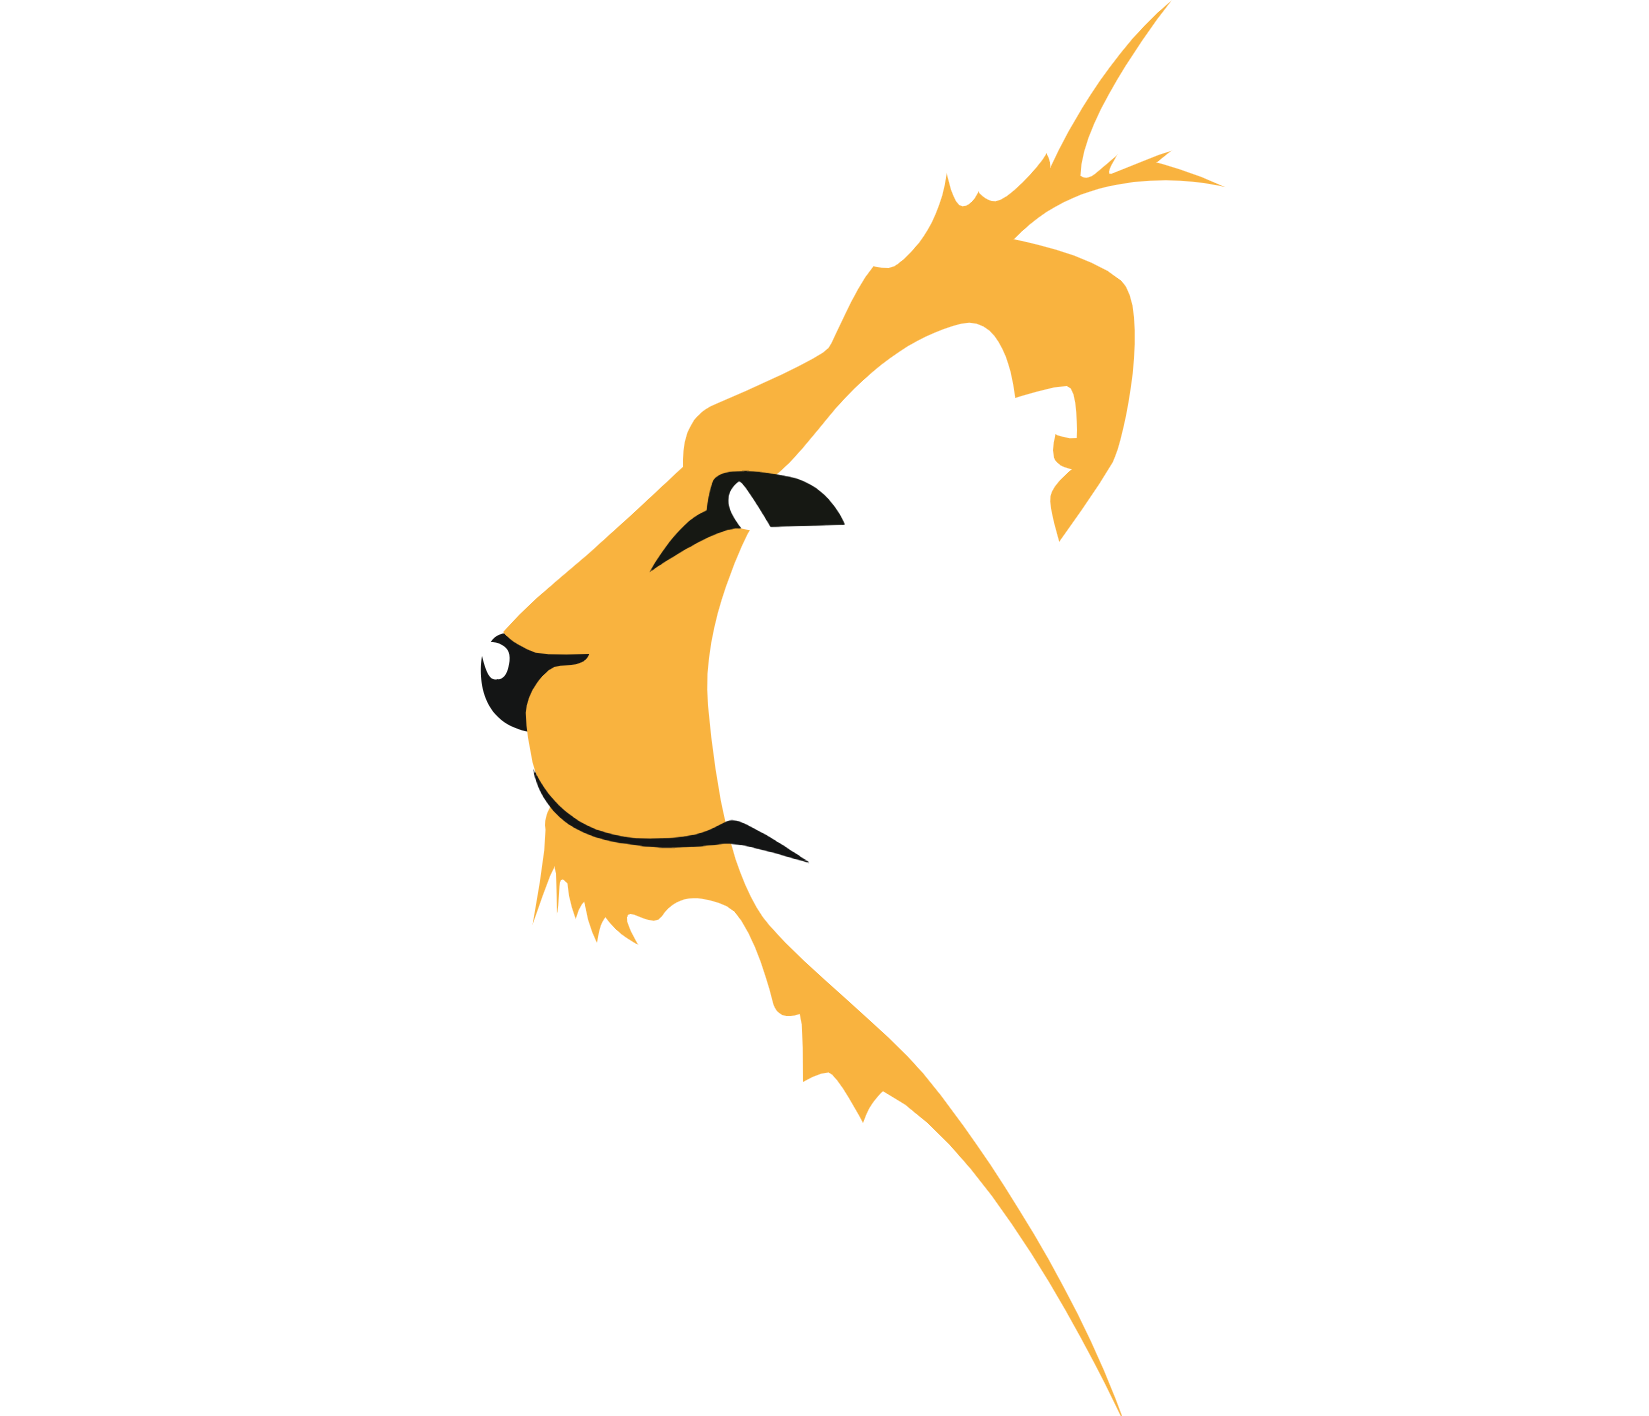 Thomson House School Logo in the shape of a lion's head in profile